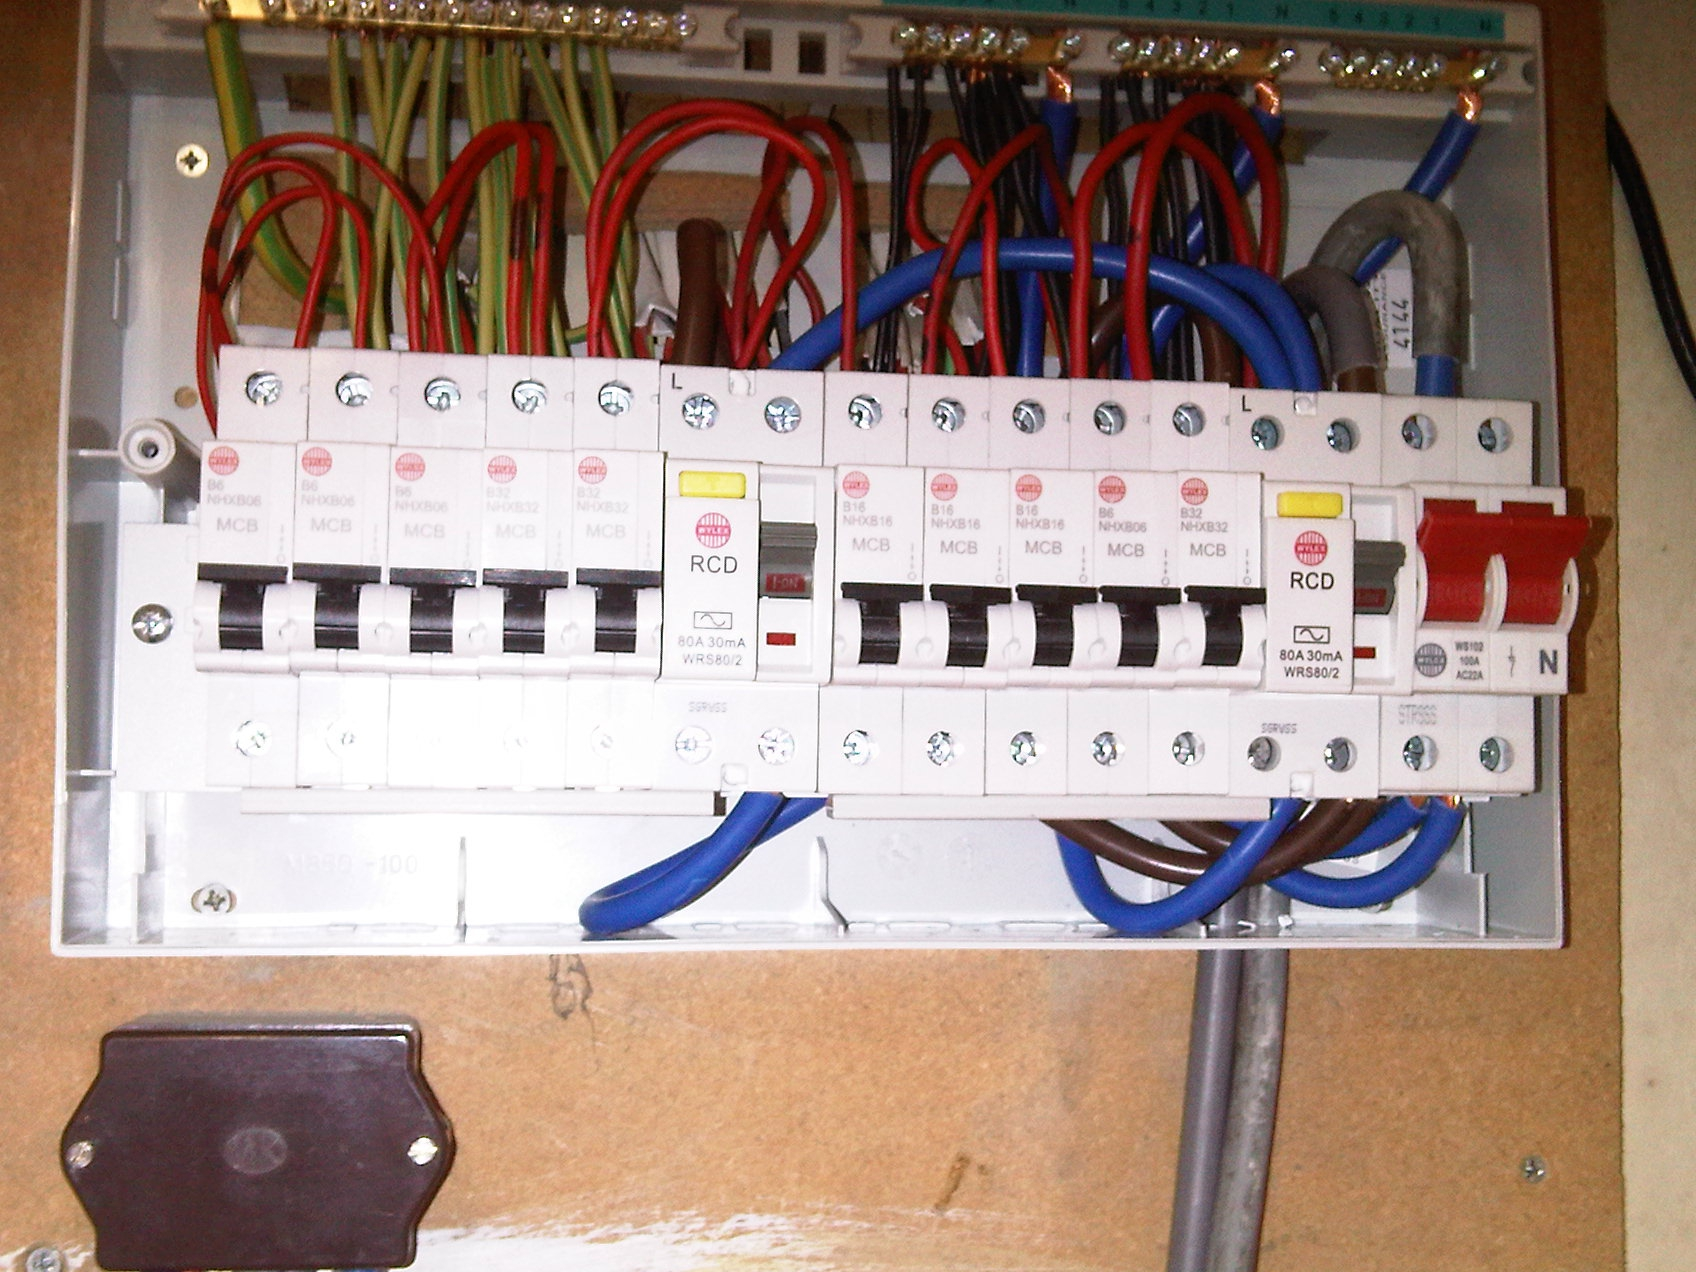 Fusebox 4 household fuse box residential fuse boxes \u2022 wiring diagrams j how to change a fuse box to a breaker box at creativeand.co